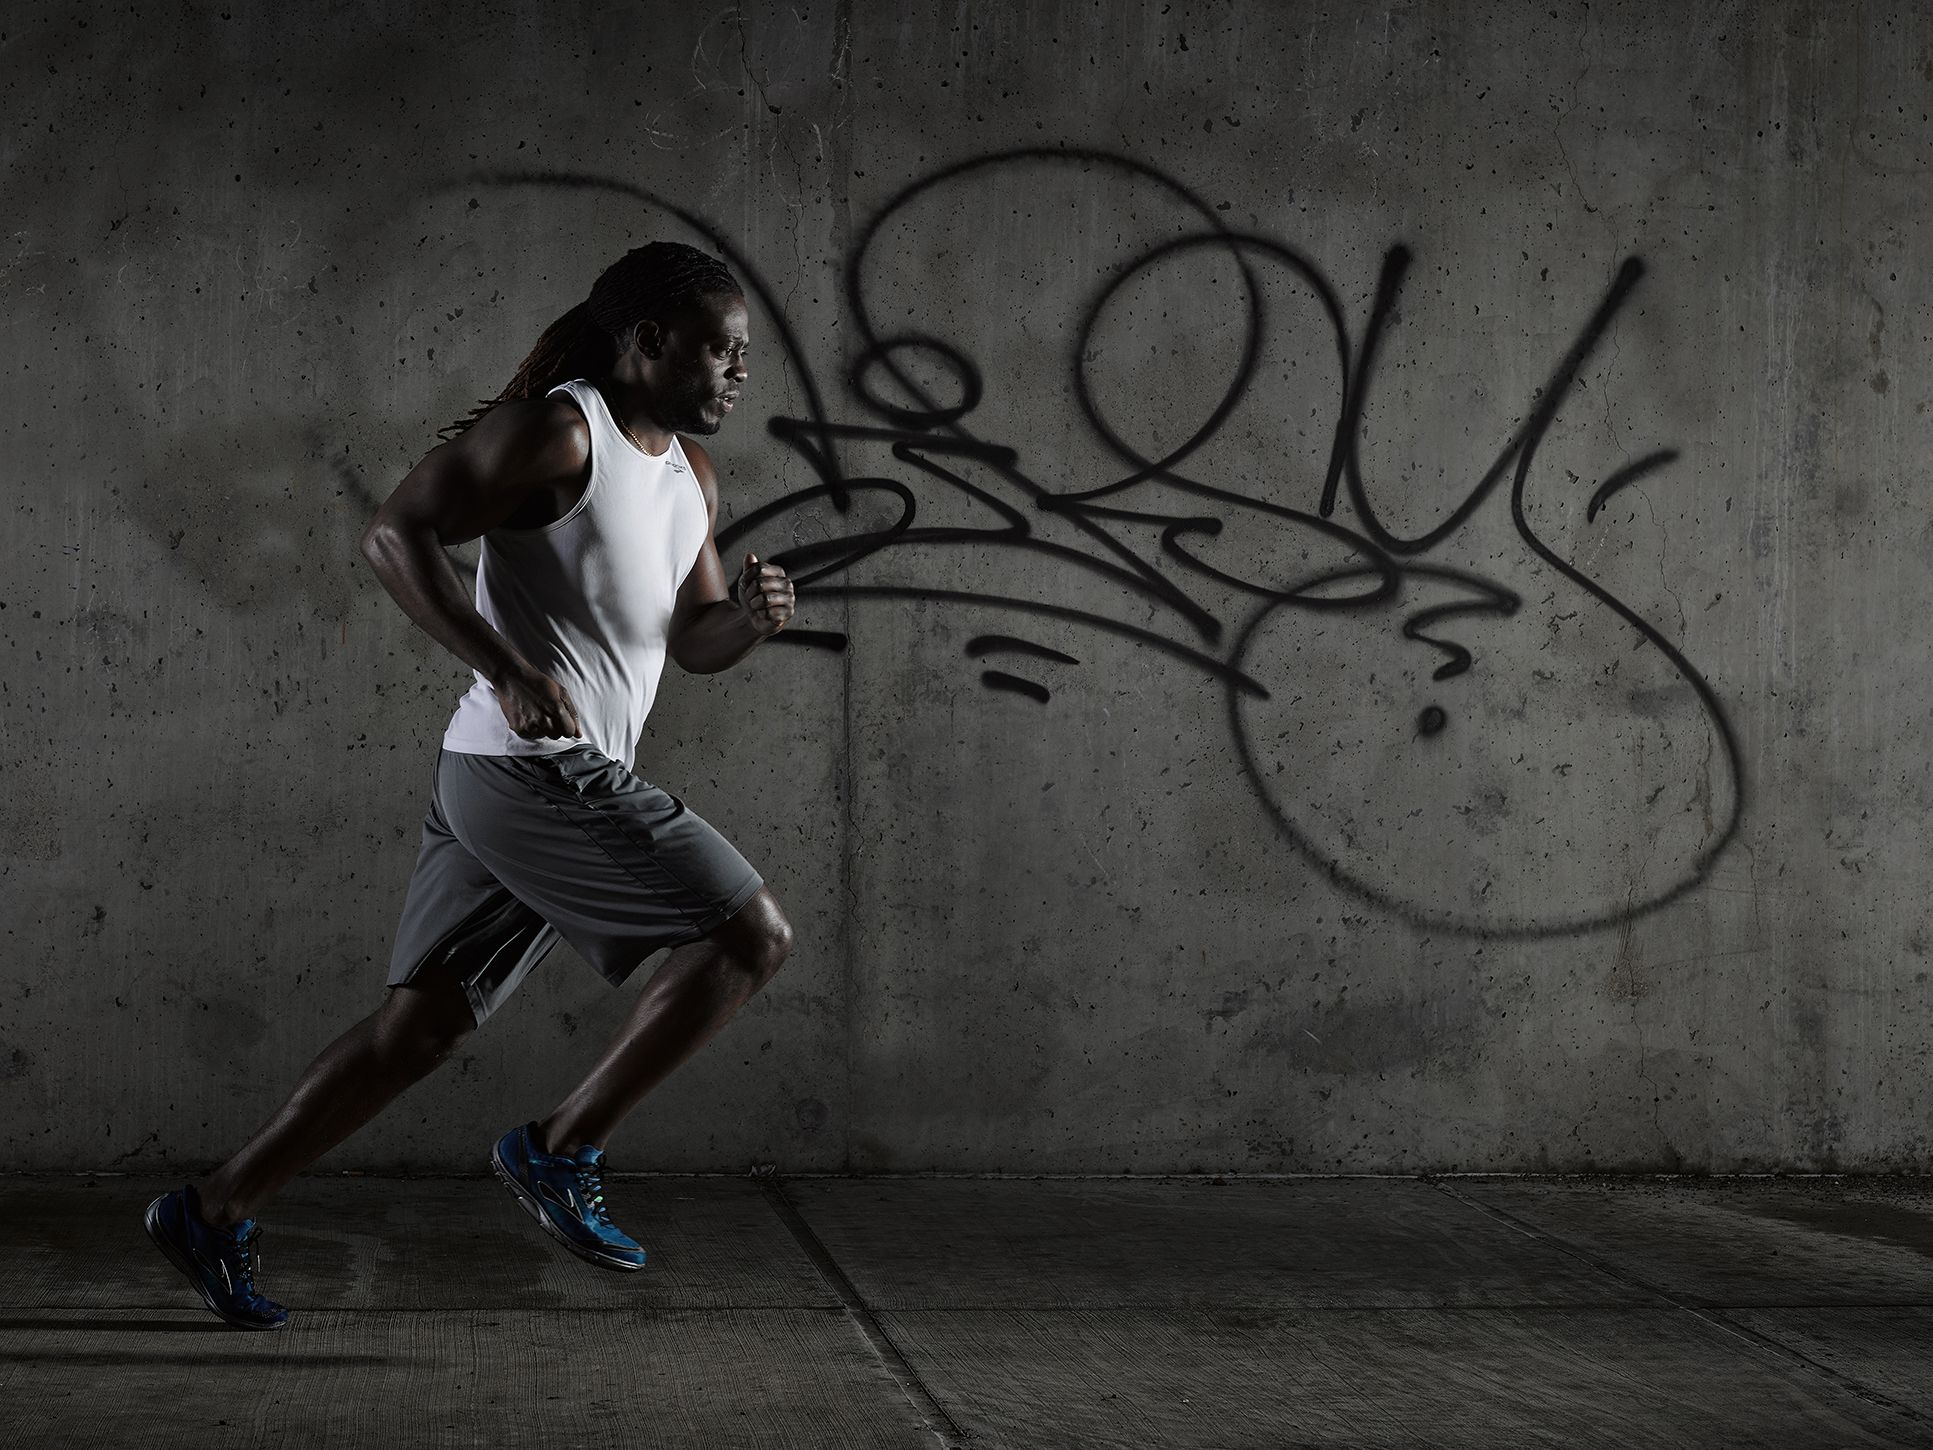 Outdoor fitness lifestyle photography in an urban setting ...